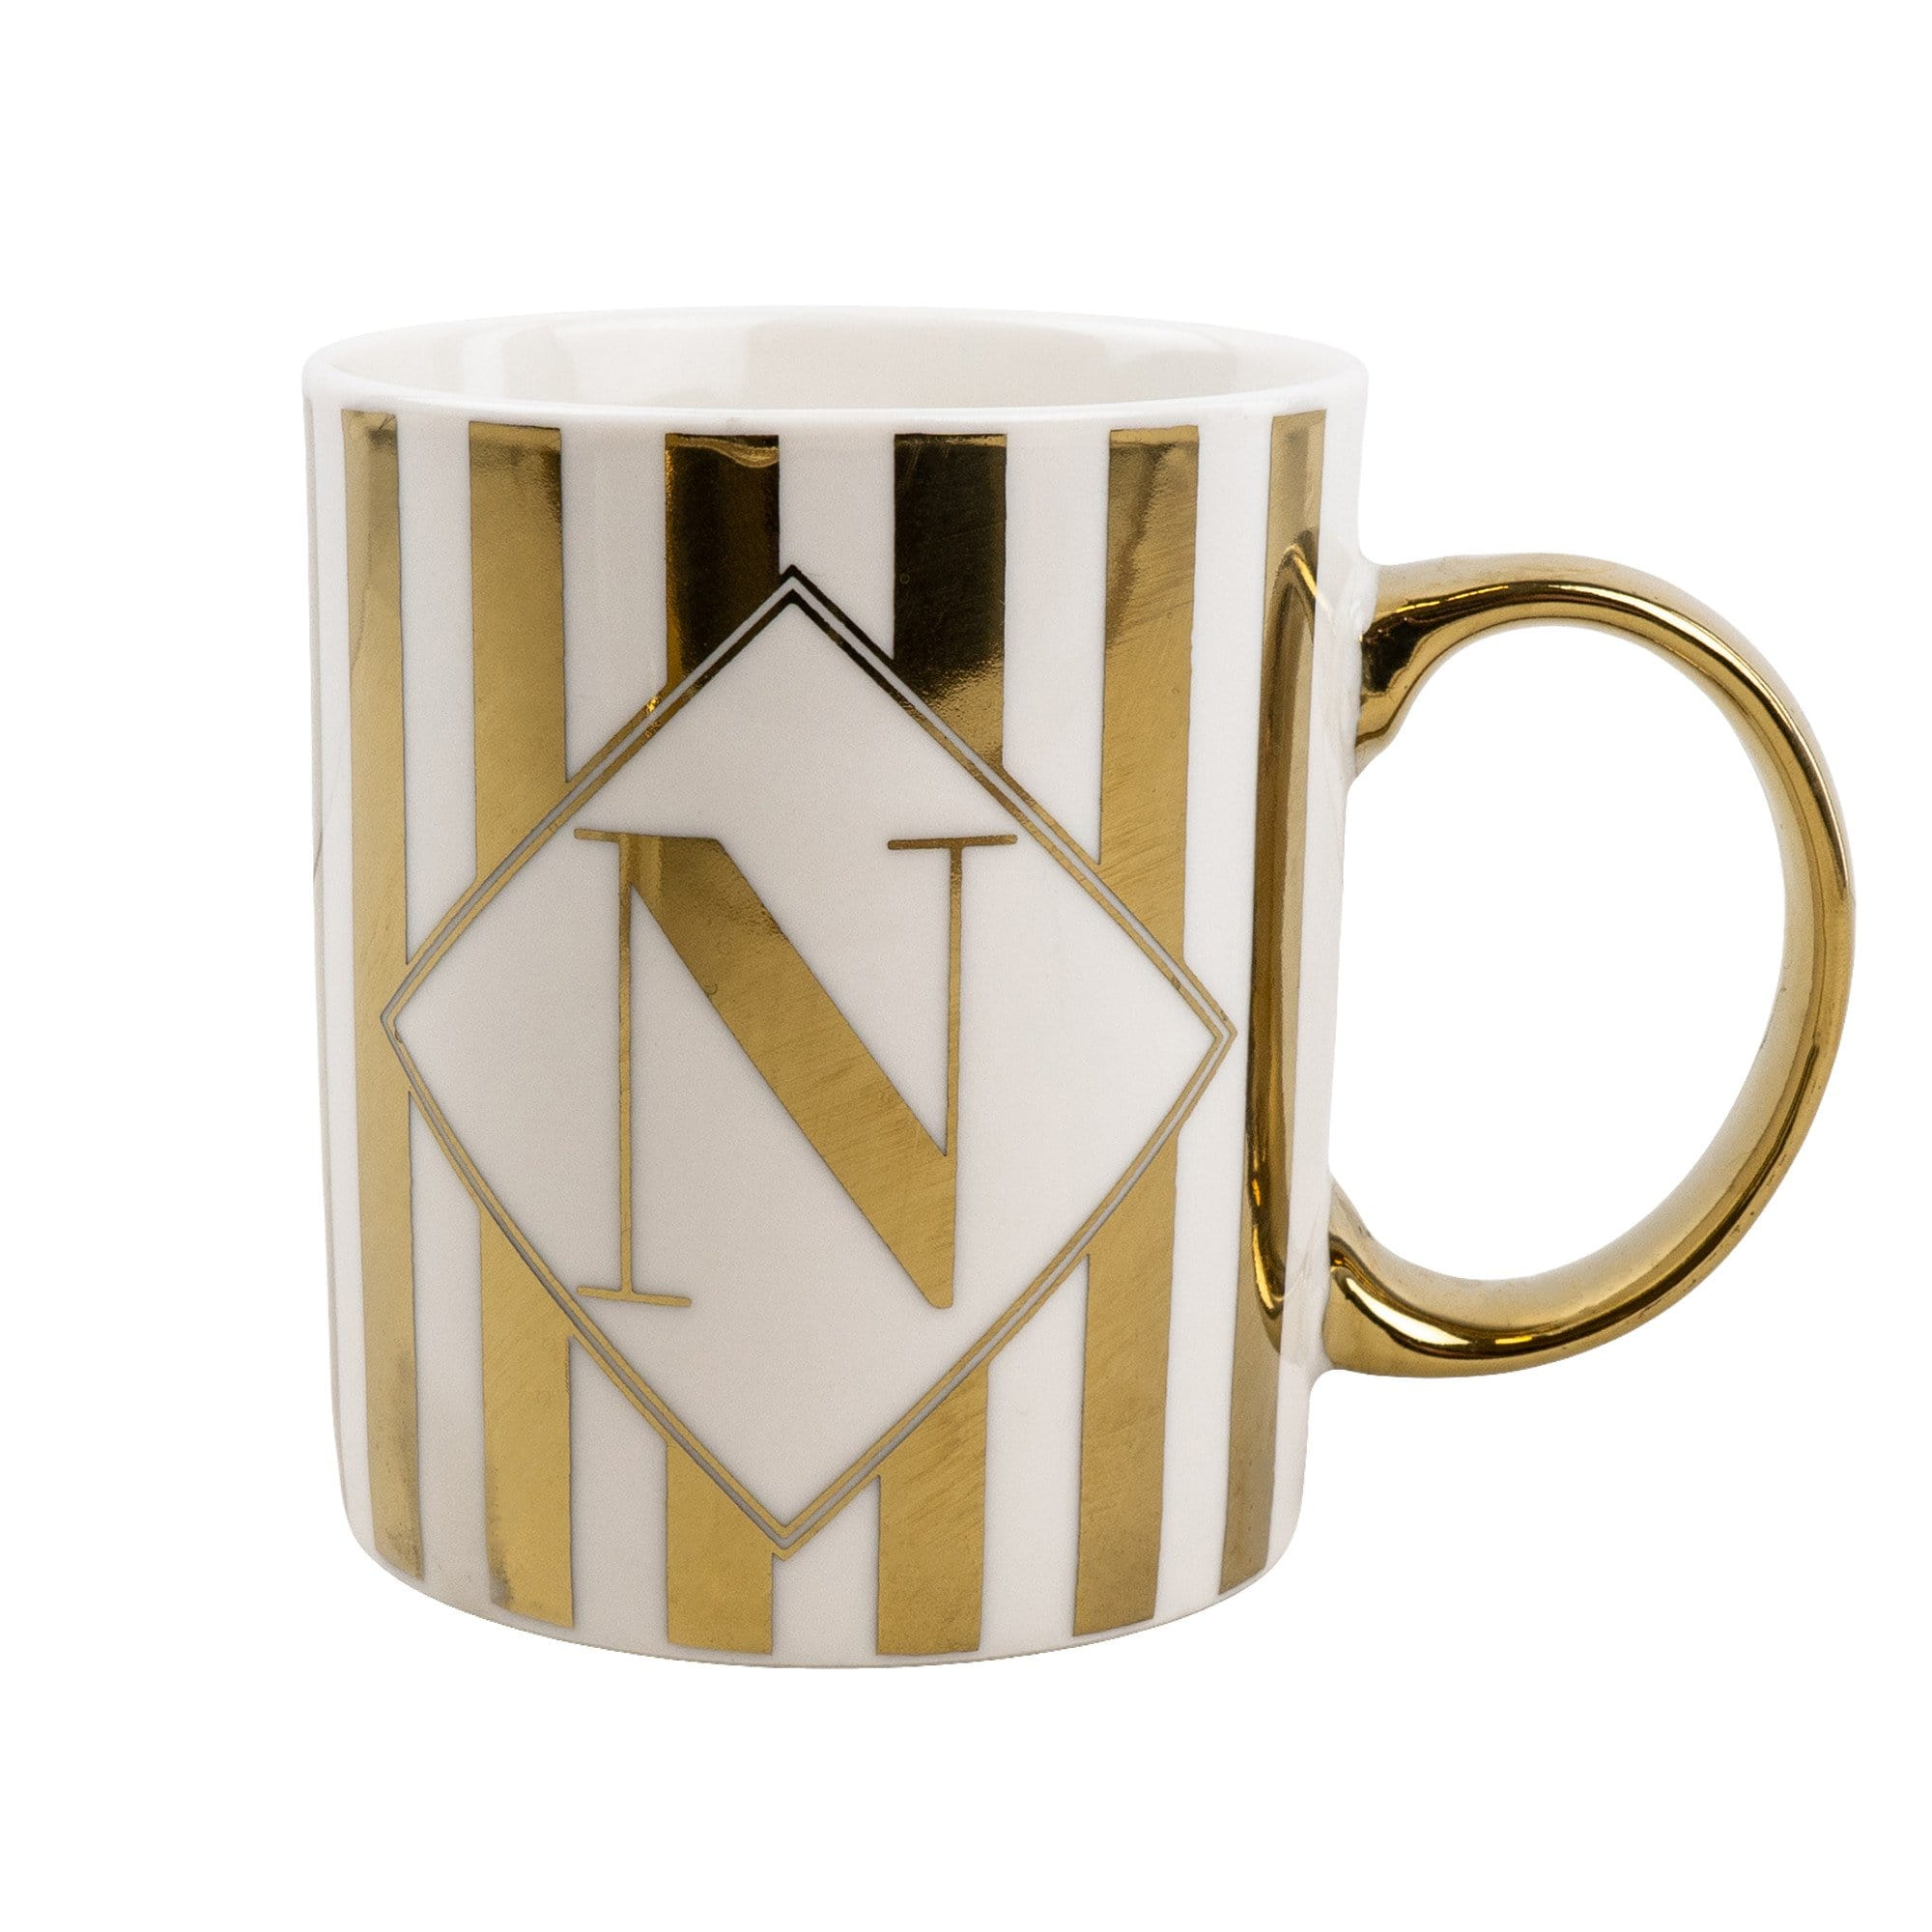 Candlelight Home Mugs Initial Straight Sided N Mug Gold Patterned 8cm 4PK